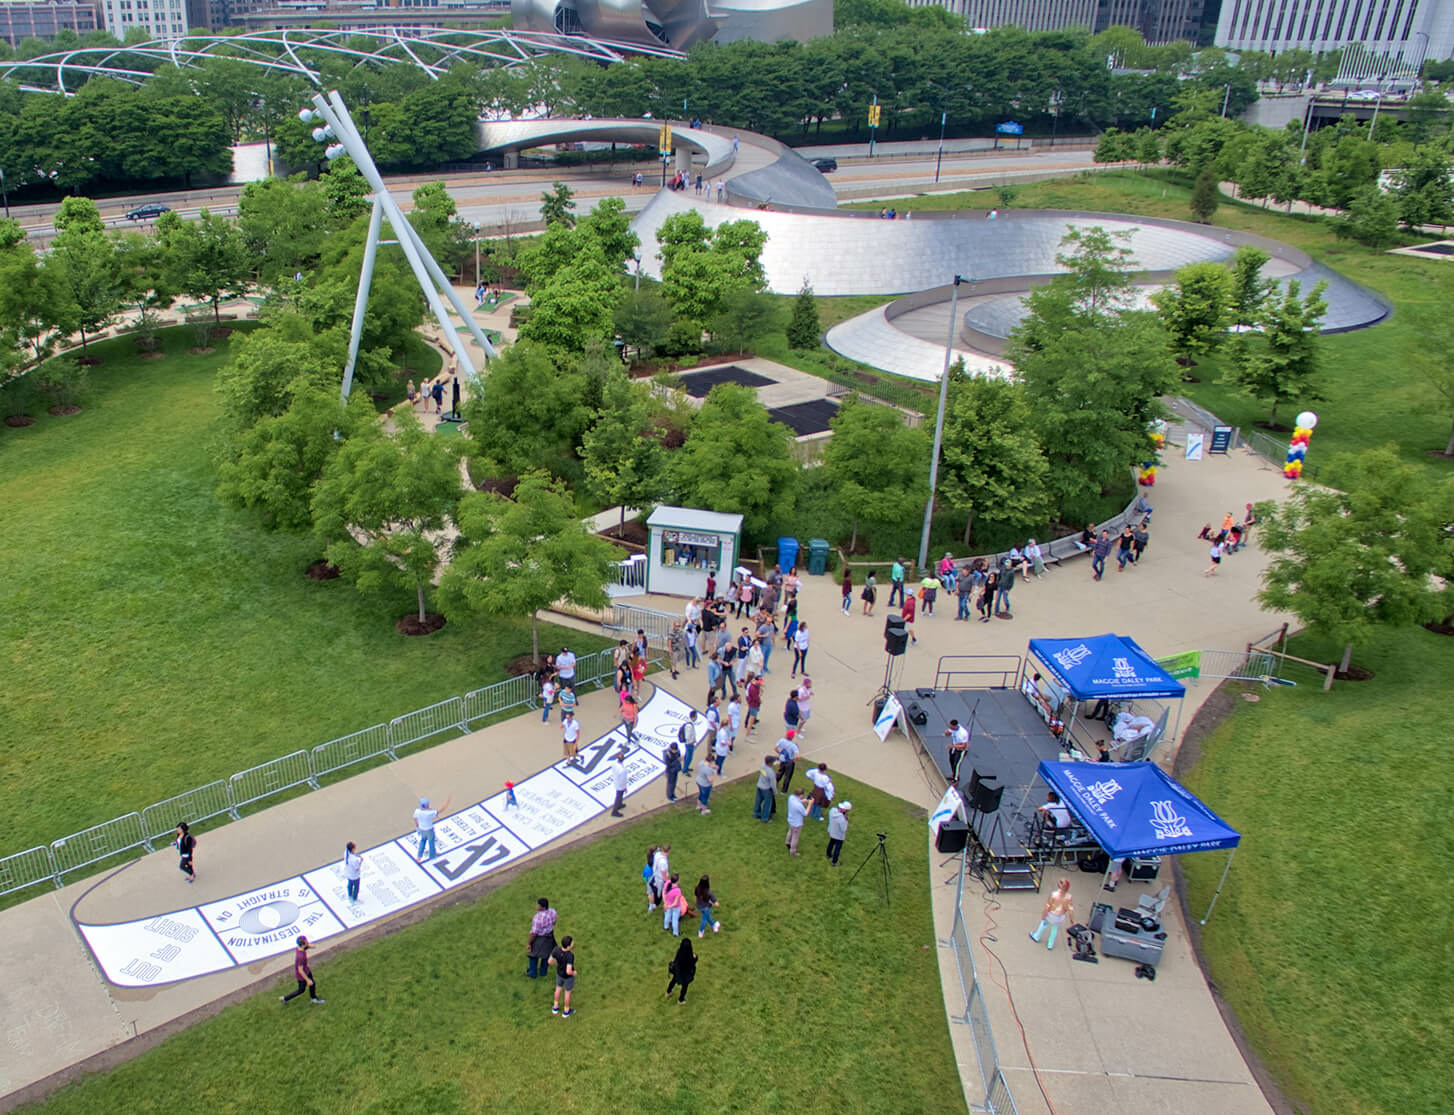 Lawrence Weiner's interactive  installation unveiled in Chicago